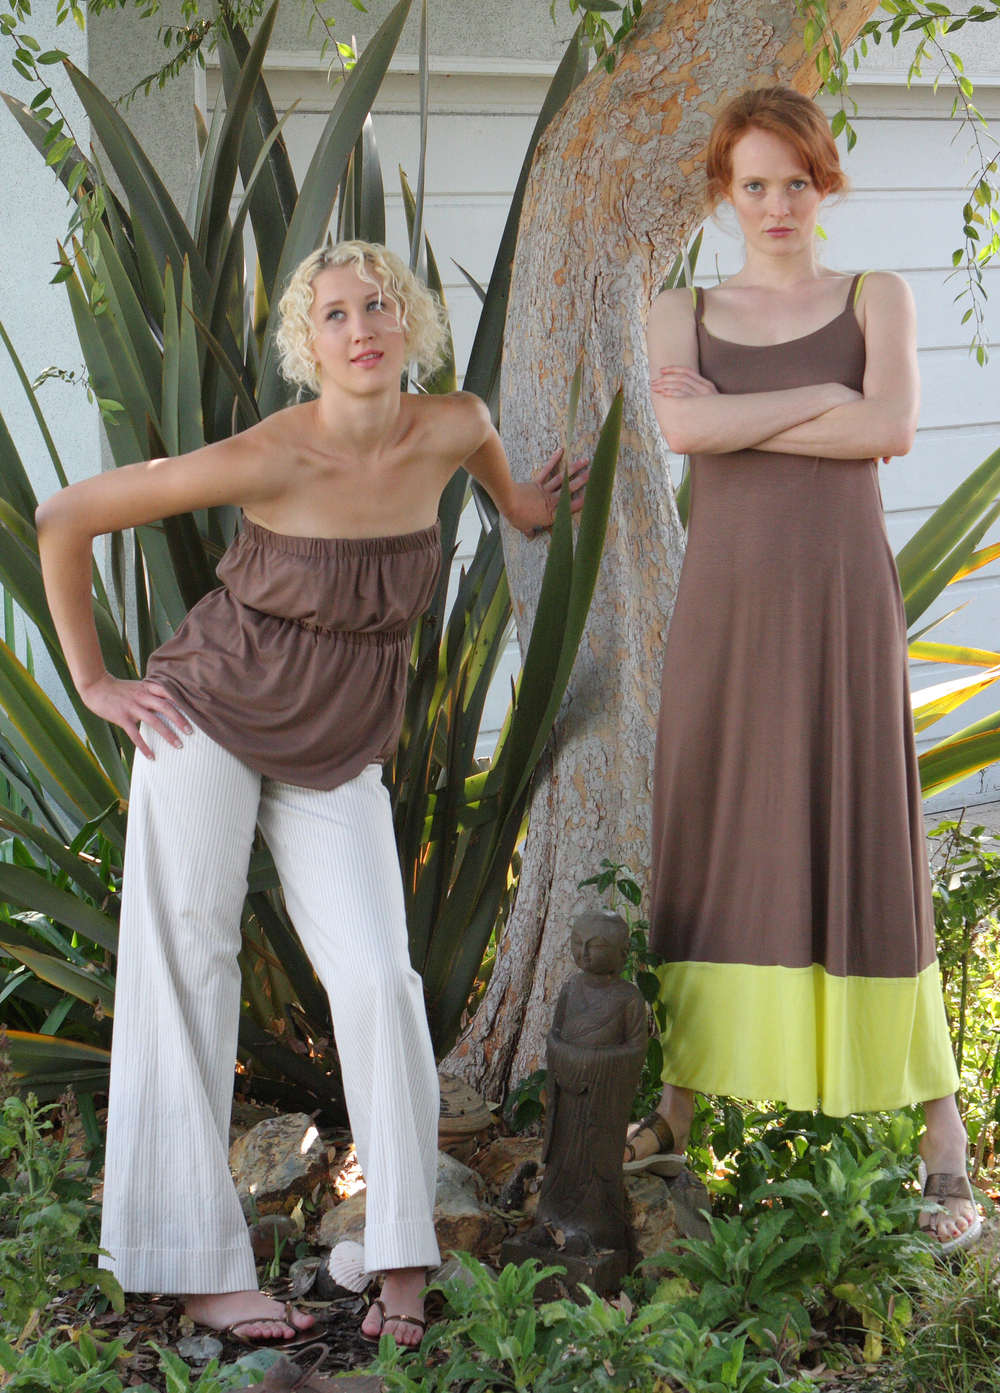 Strapless Pull-On Reverible Top in Mocha Butter Jersey  Wide Leg Sailor Pant  in Pinstriped Cotton Twill  Empire Double Strap Long Tank Dress w/ Pockets in Mocha / Yellow Butter Jersey